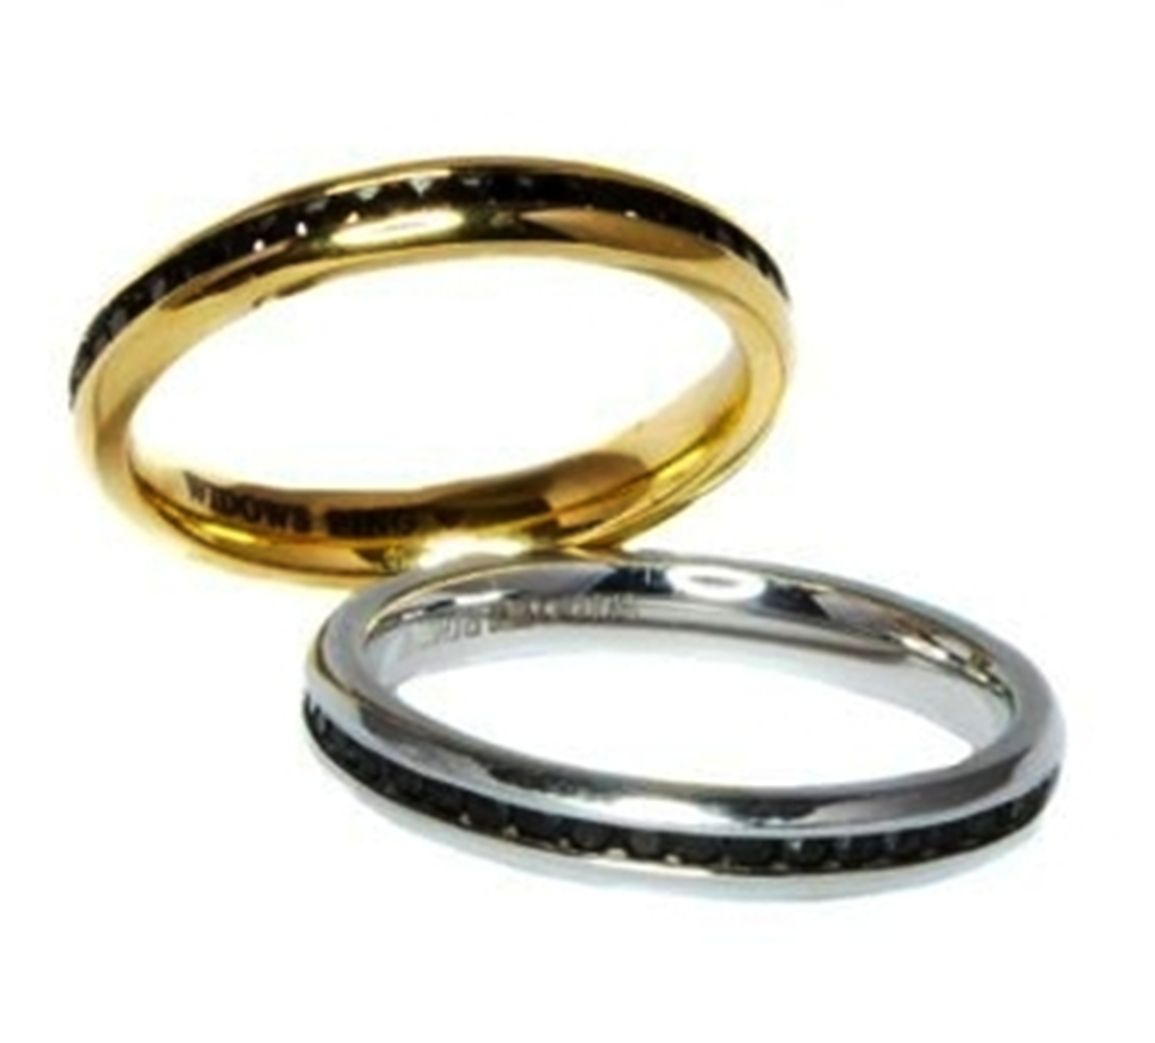 FOREVER Widow's 3rd Ring Add to the wedding rings to